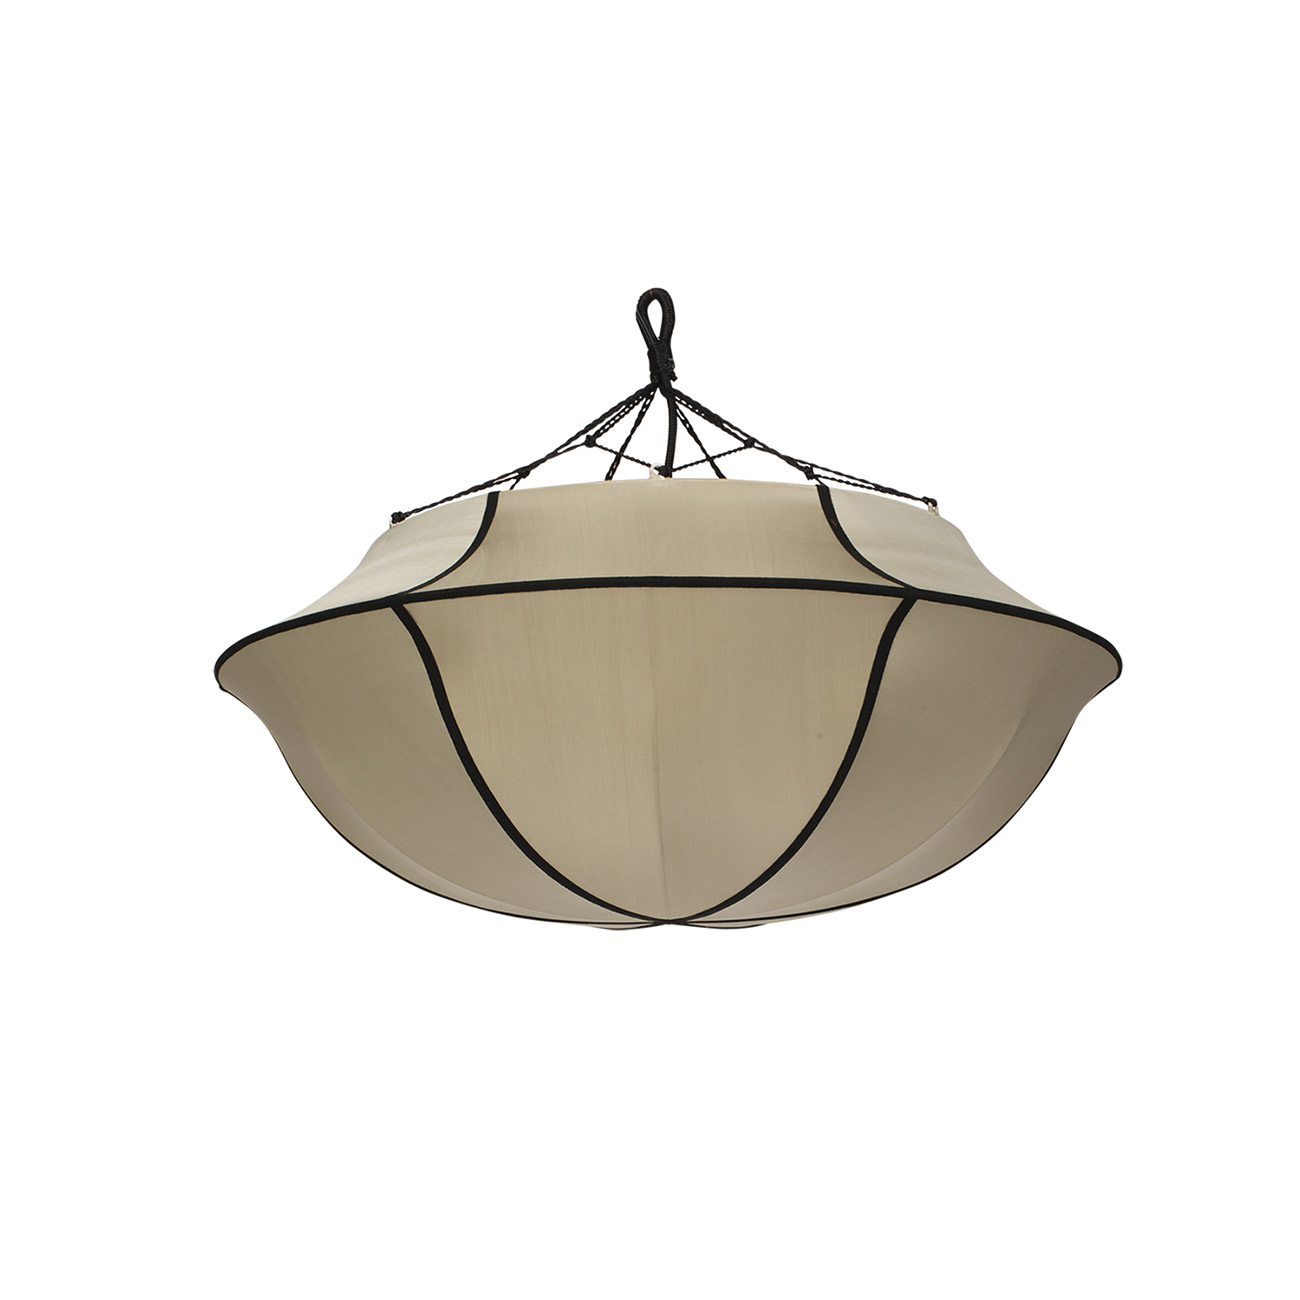 Indochia Umbrella Taklampe